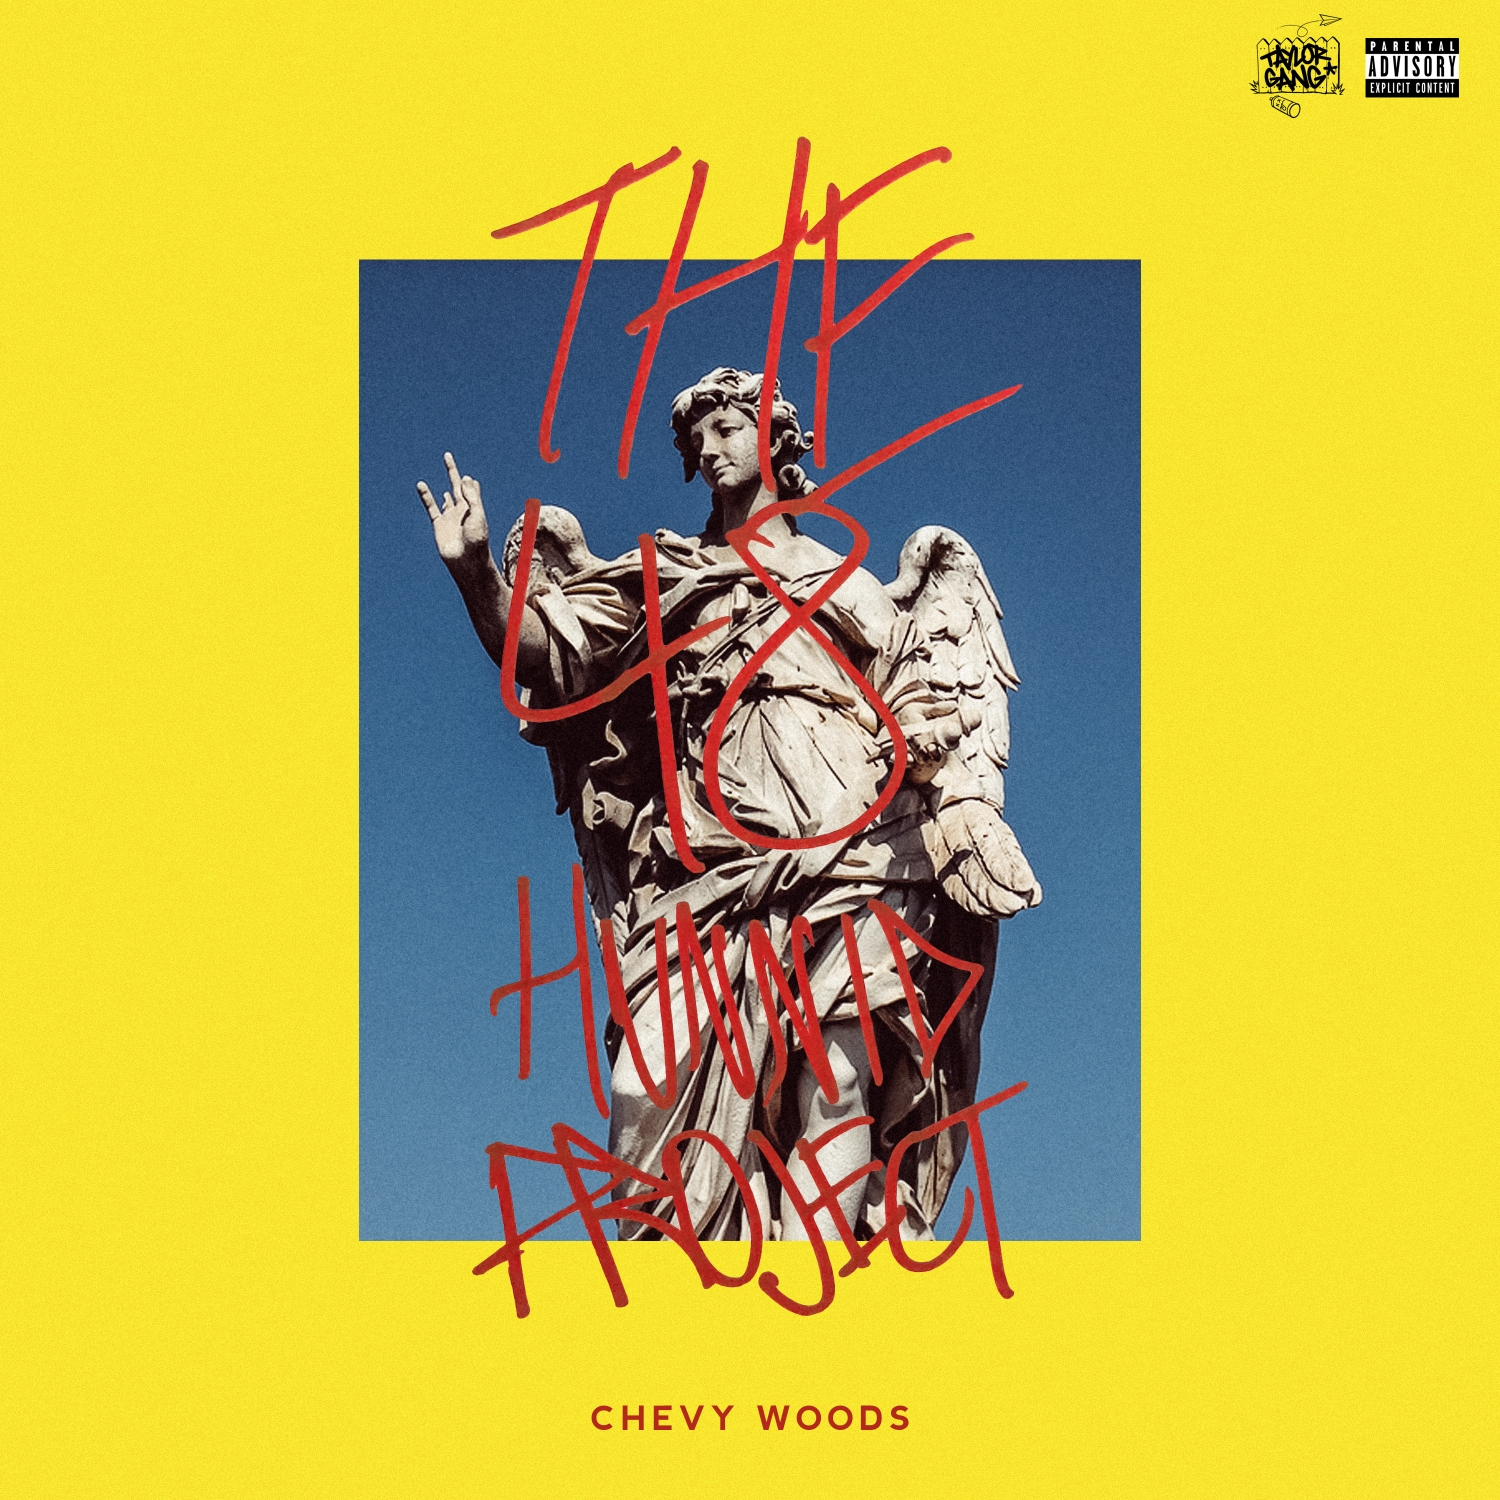 Chevy Woods - The 48 Hunnid Project